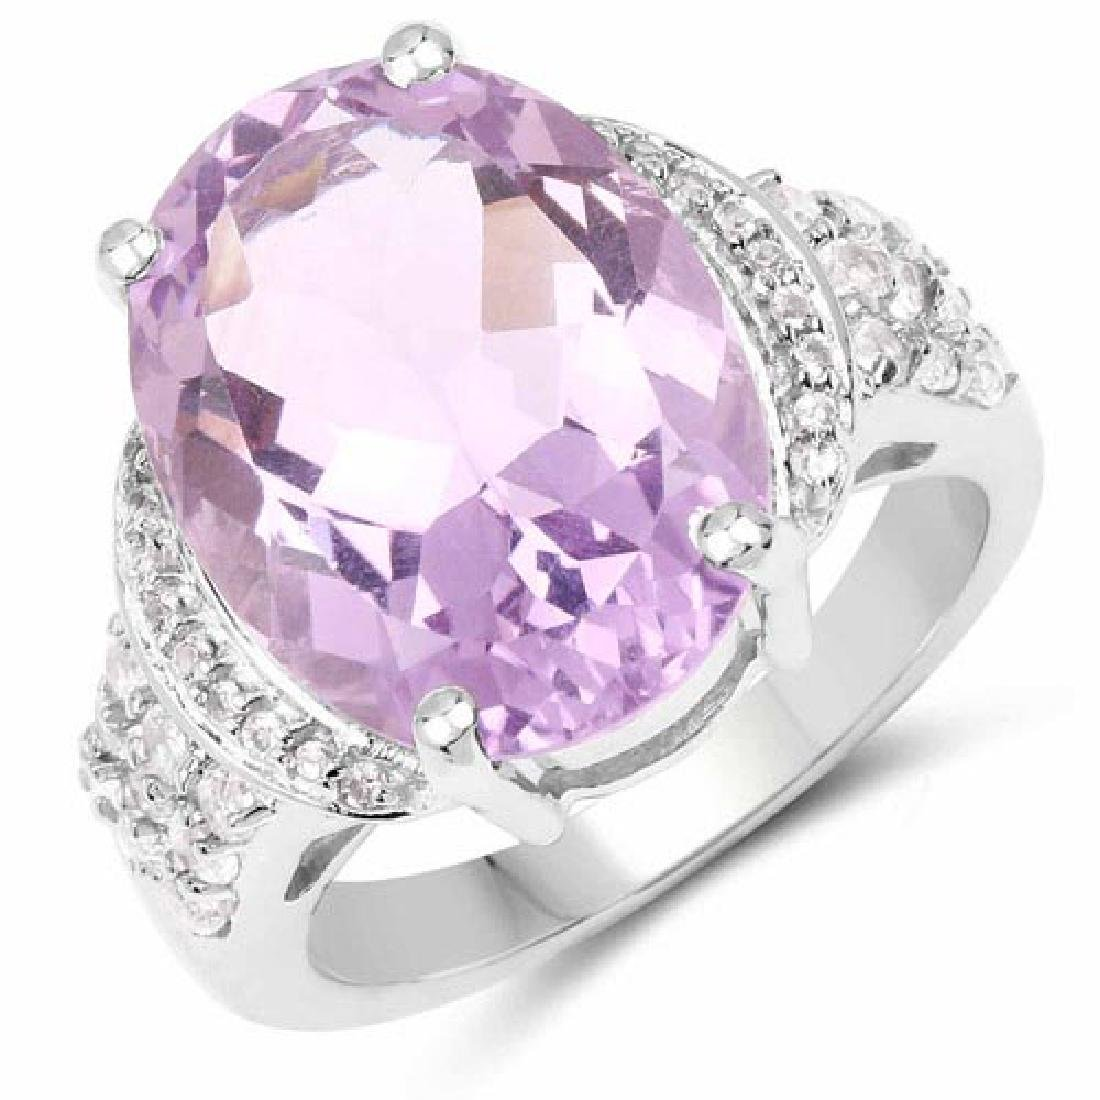 8.98 Carat Genuine Amethyst and White Topaz .925 Sterli